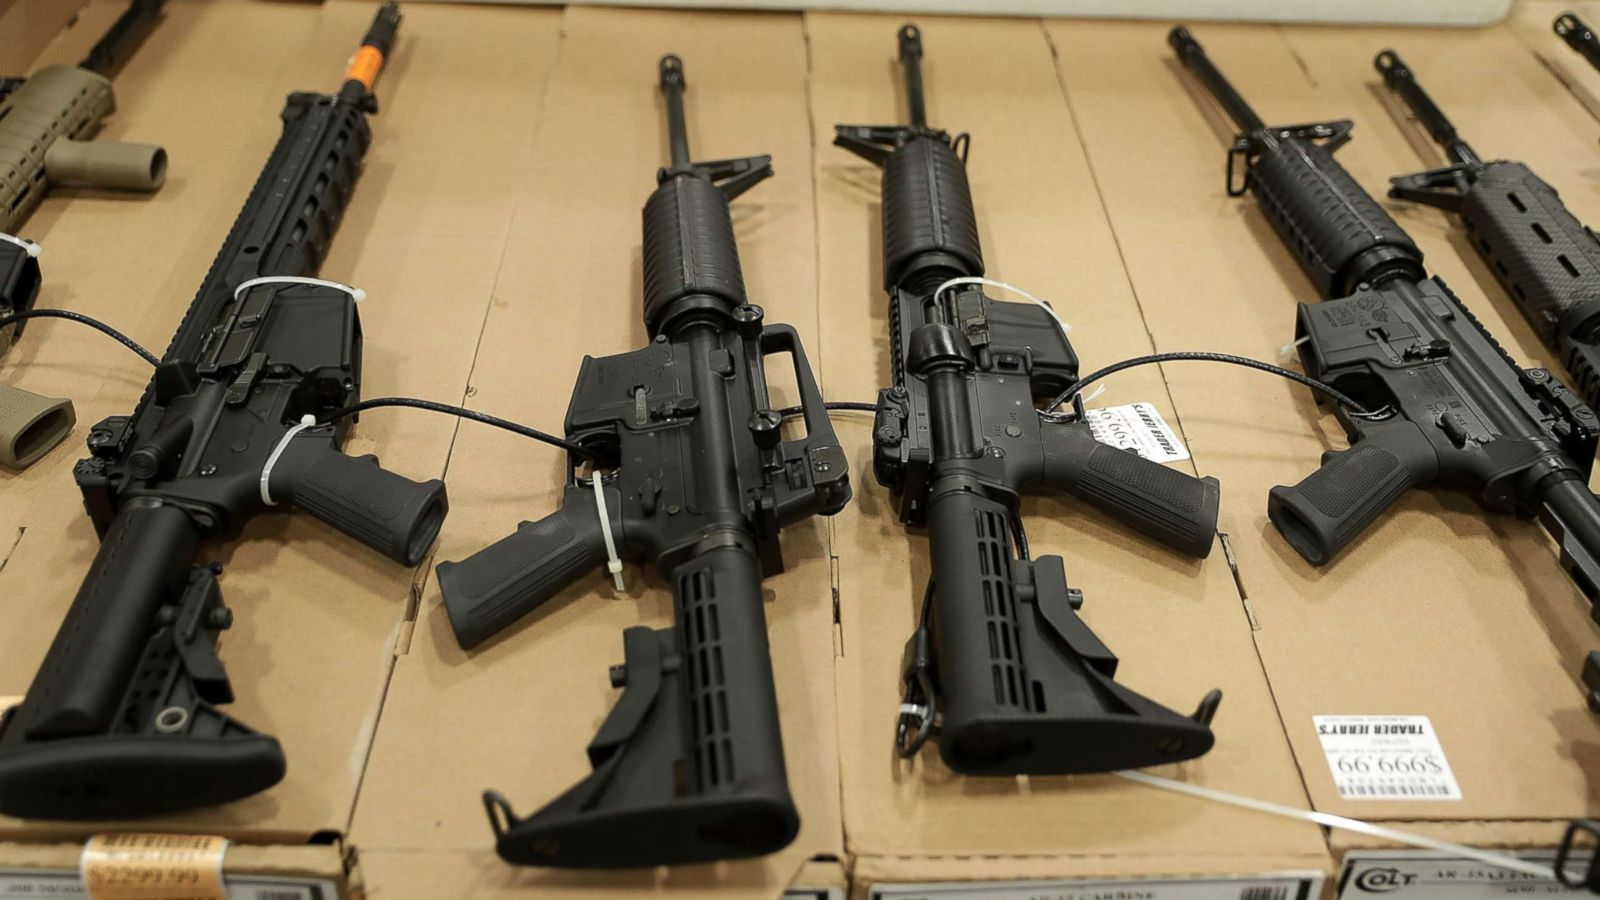 Mexico is suing US gunmakers for thousands of guns trafficked across the border each year. Can they win?